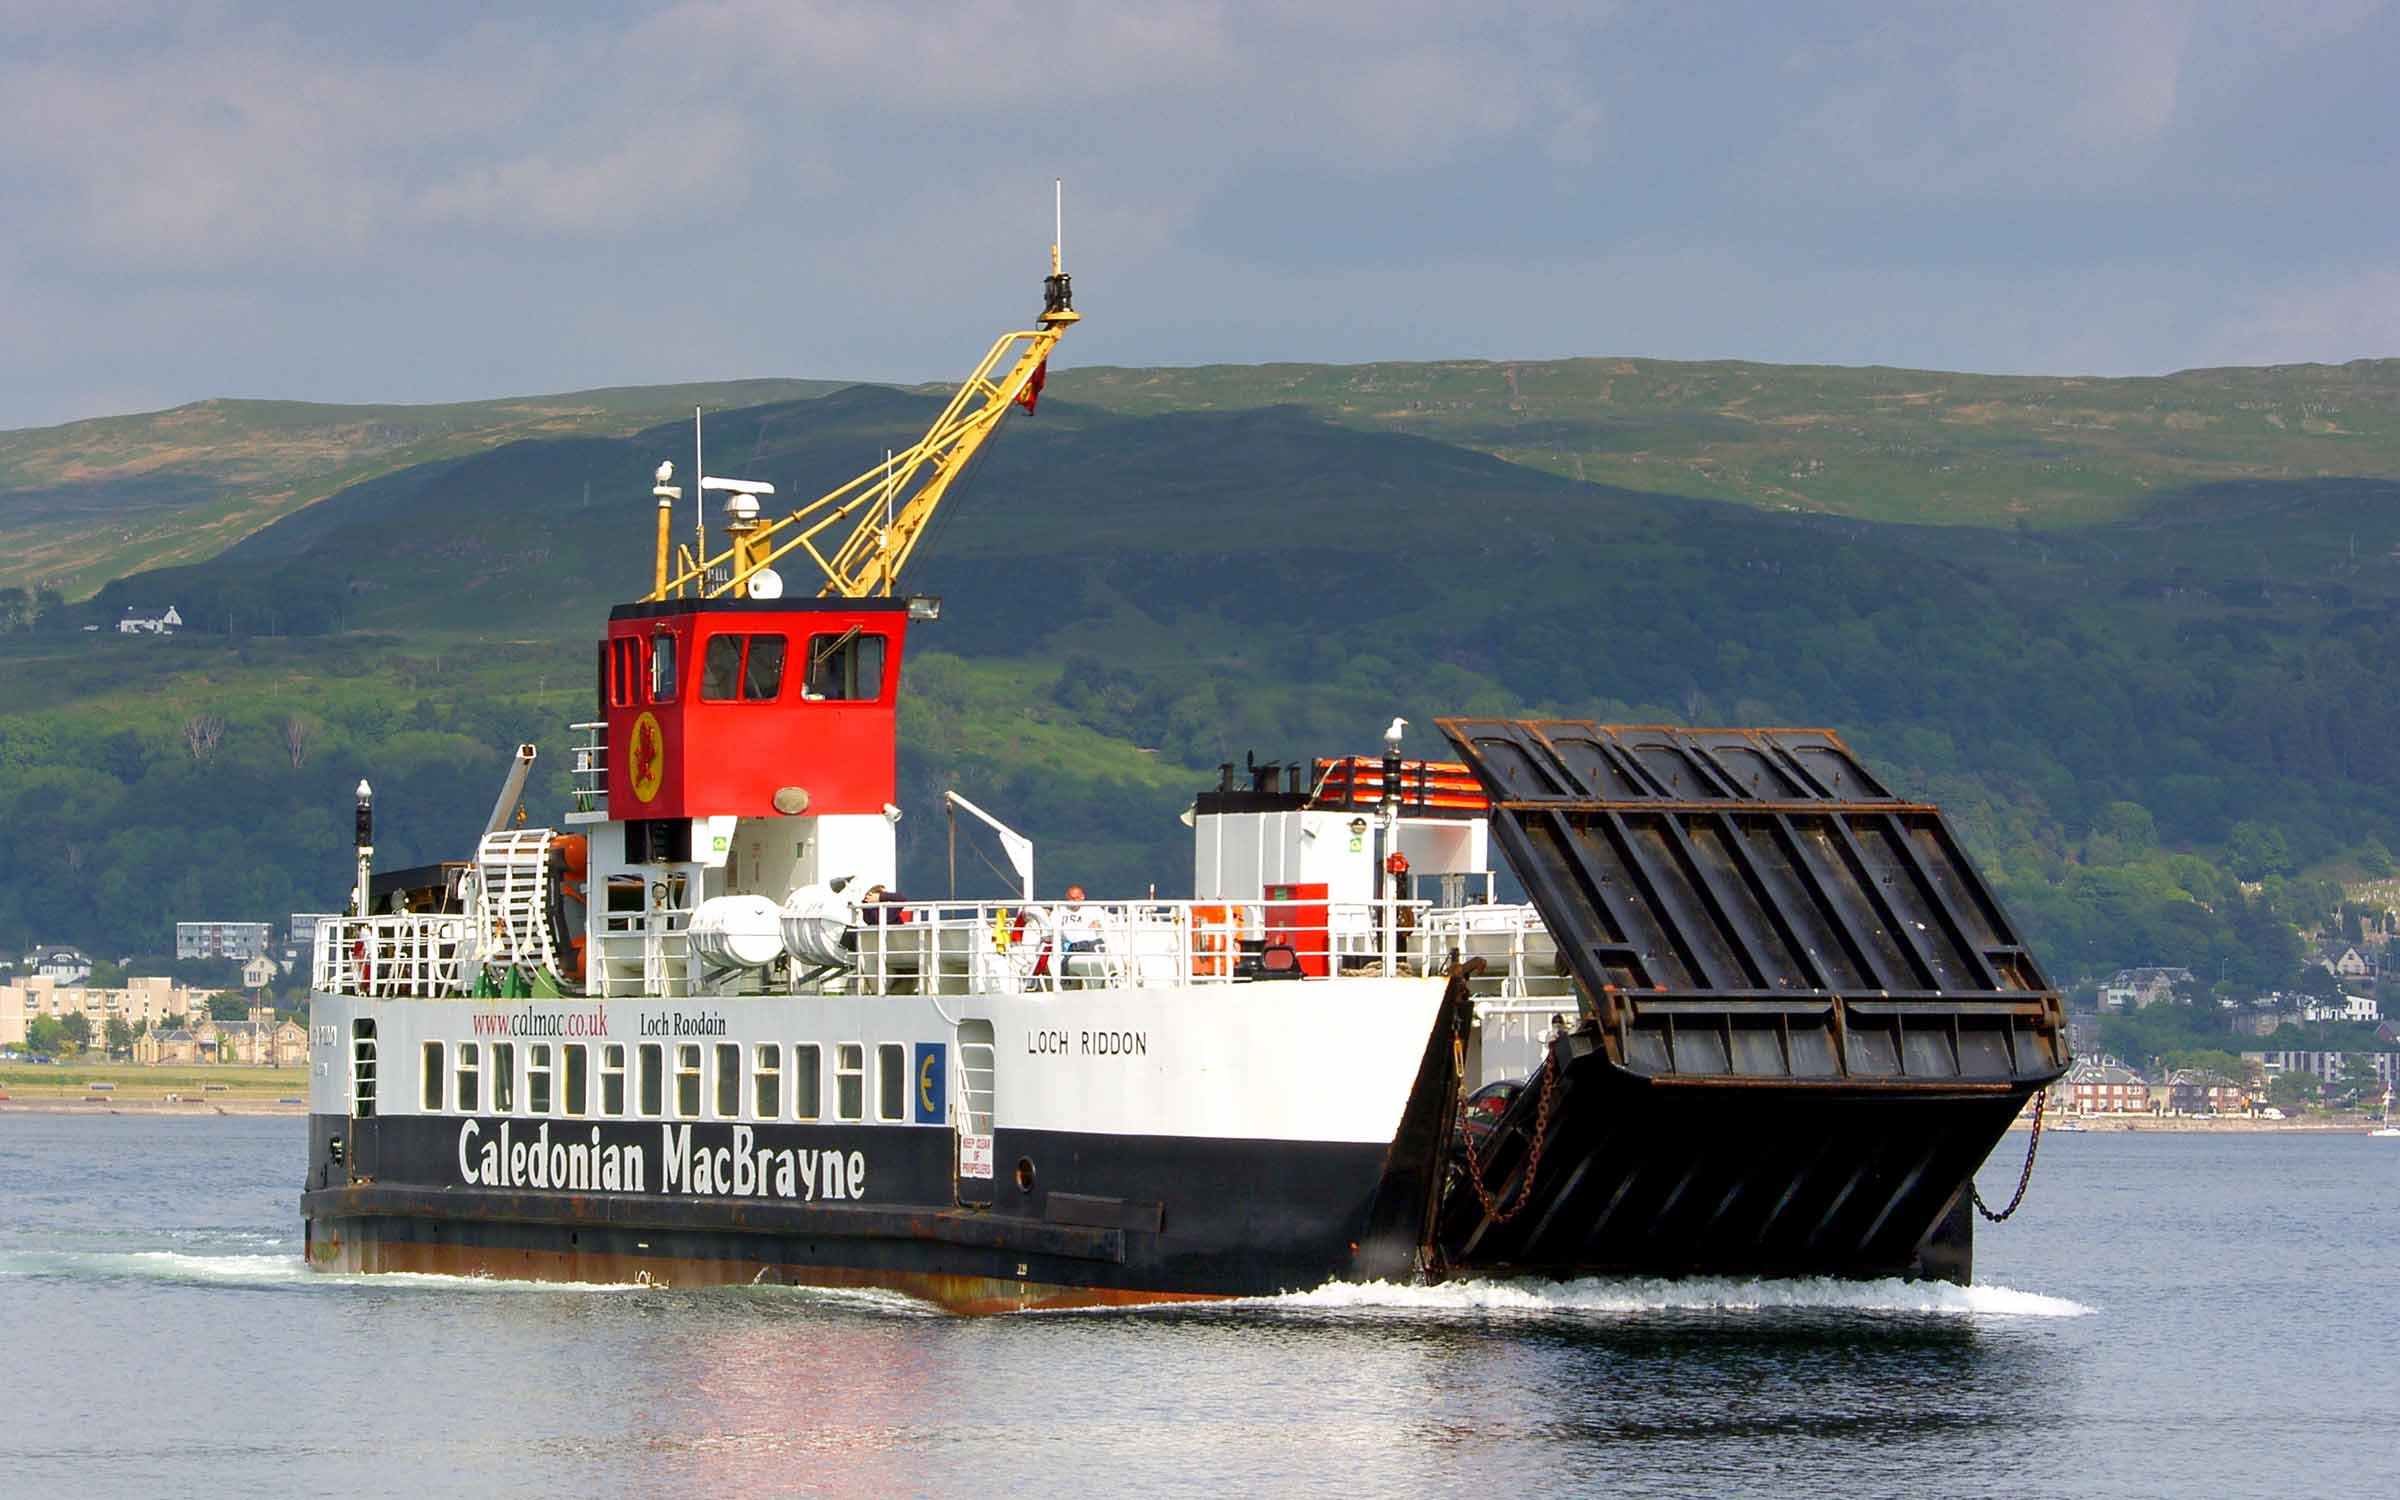 Loch Riddon arriving at Cumbrae Slip (Ships of CalMac)